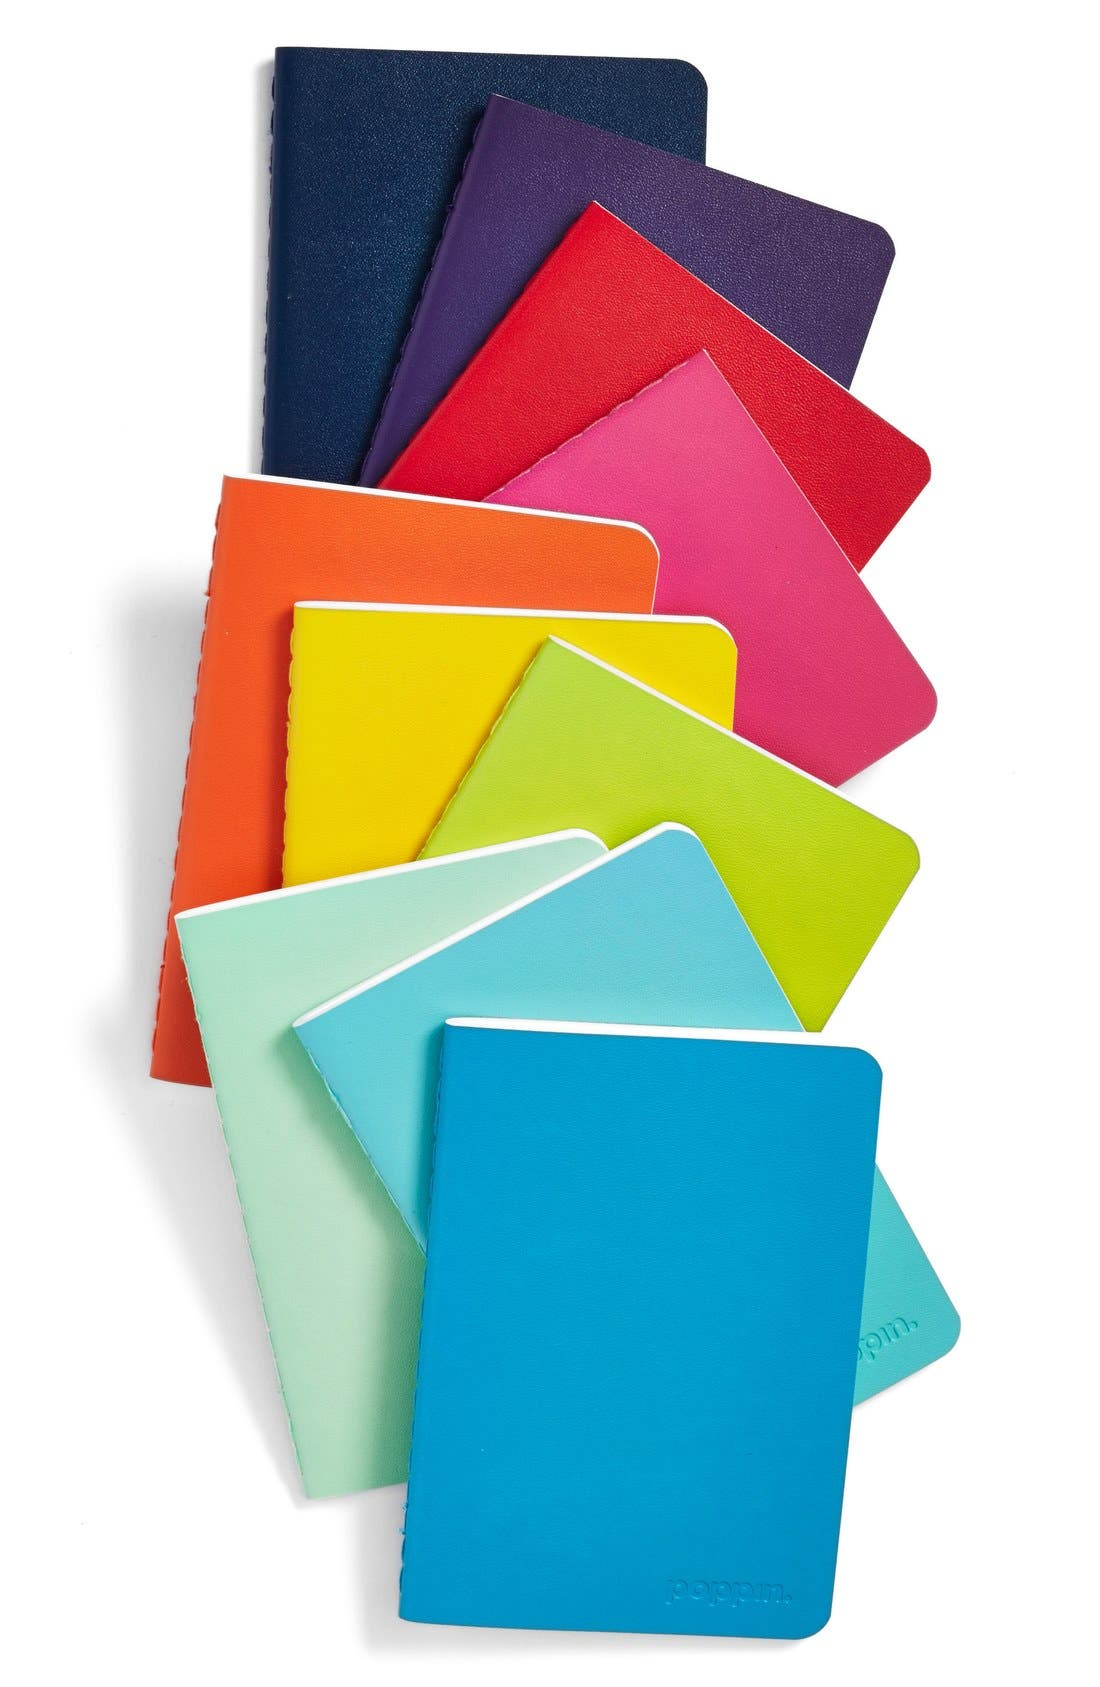 Main Image - poppin Mini Medley of Soft Cover Notebooks (Set of 10)